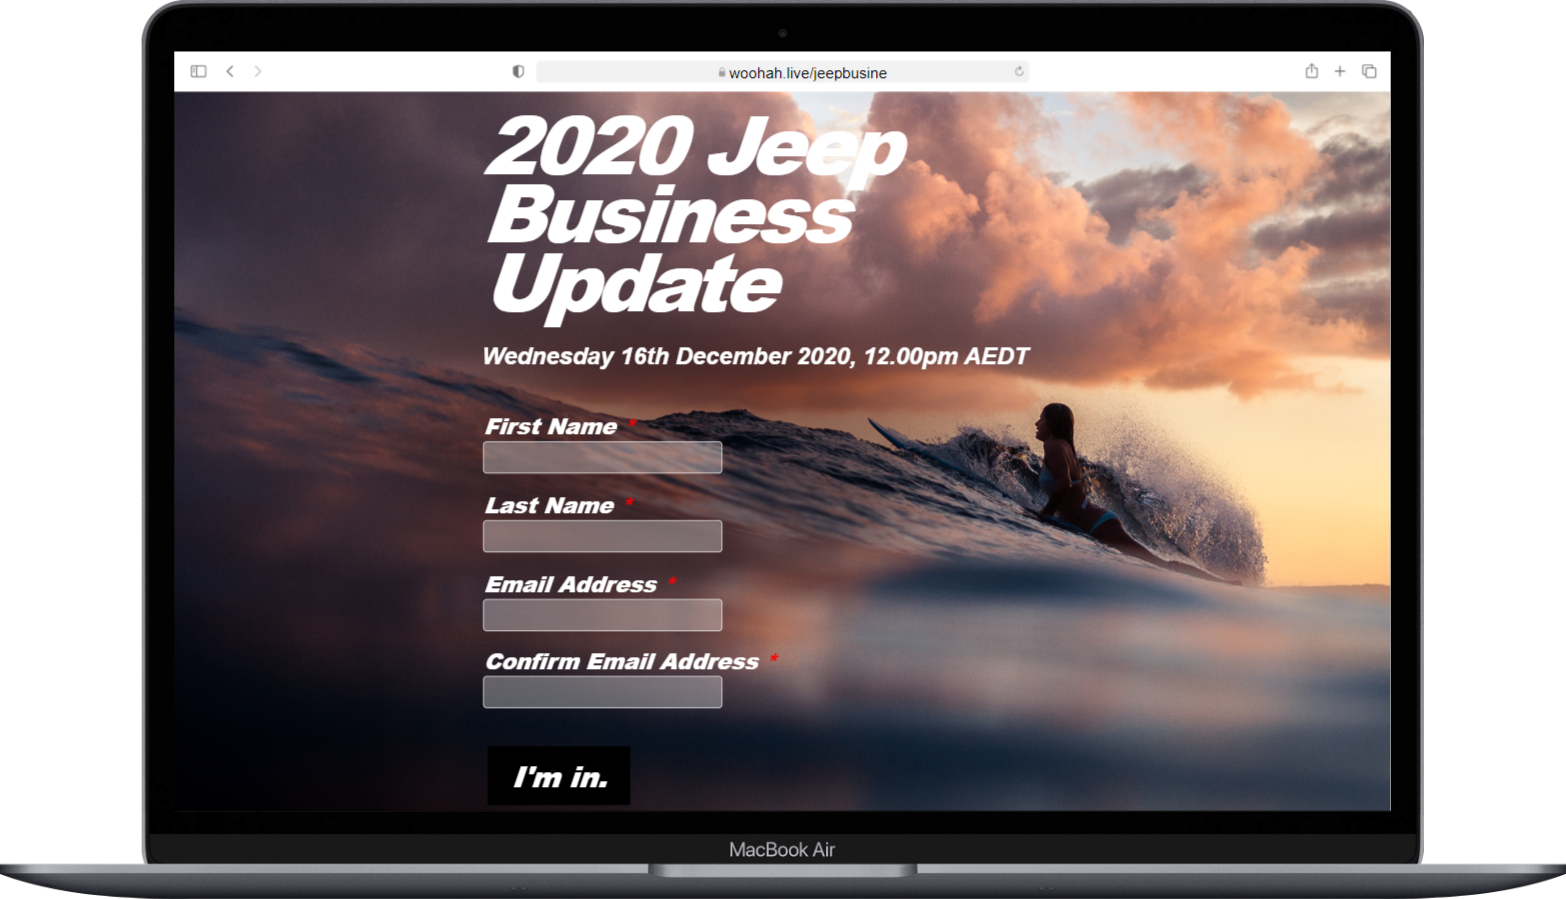 Jeep Business Update